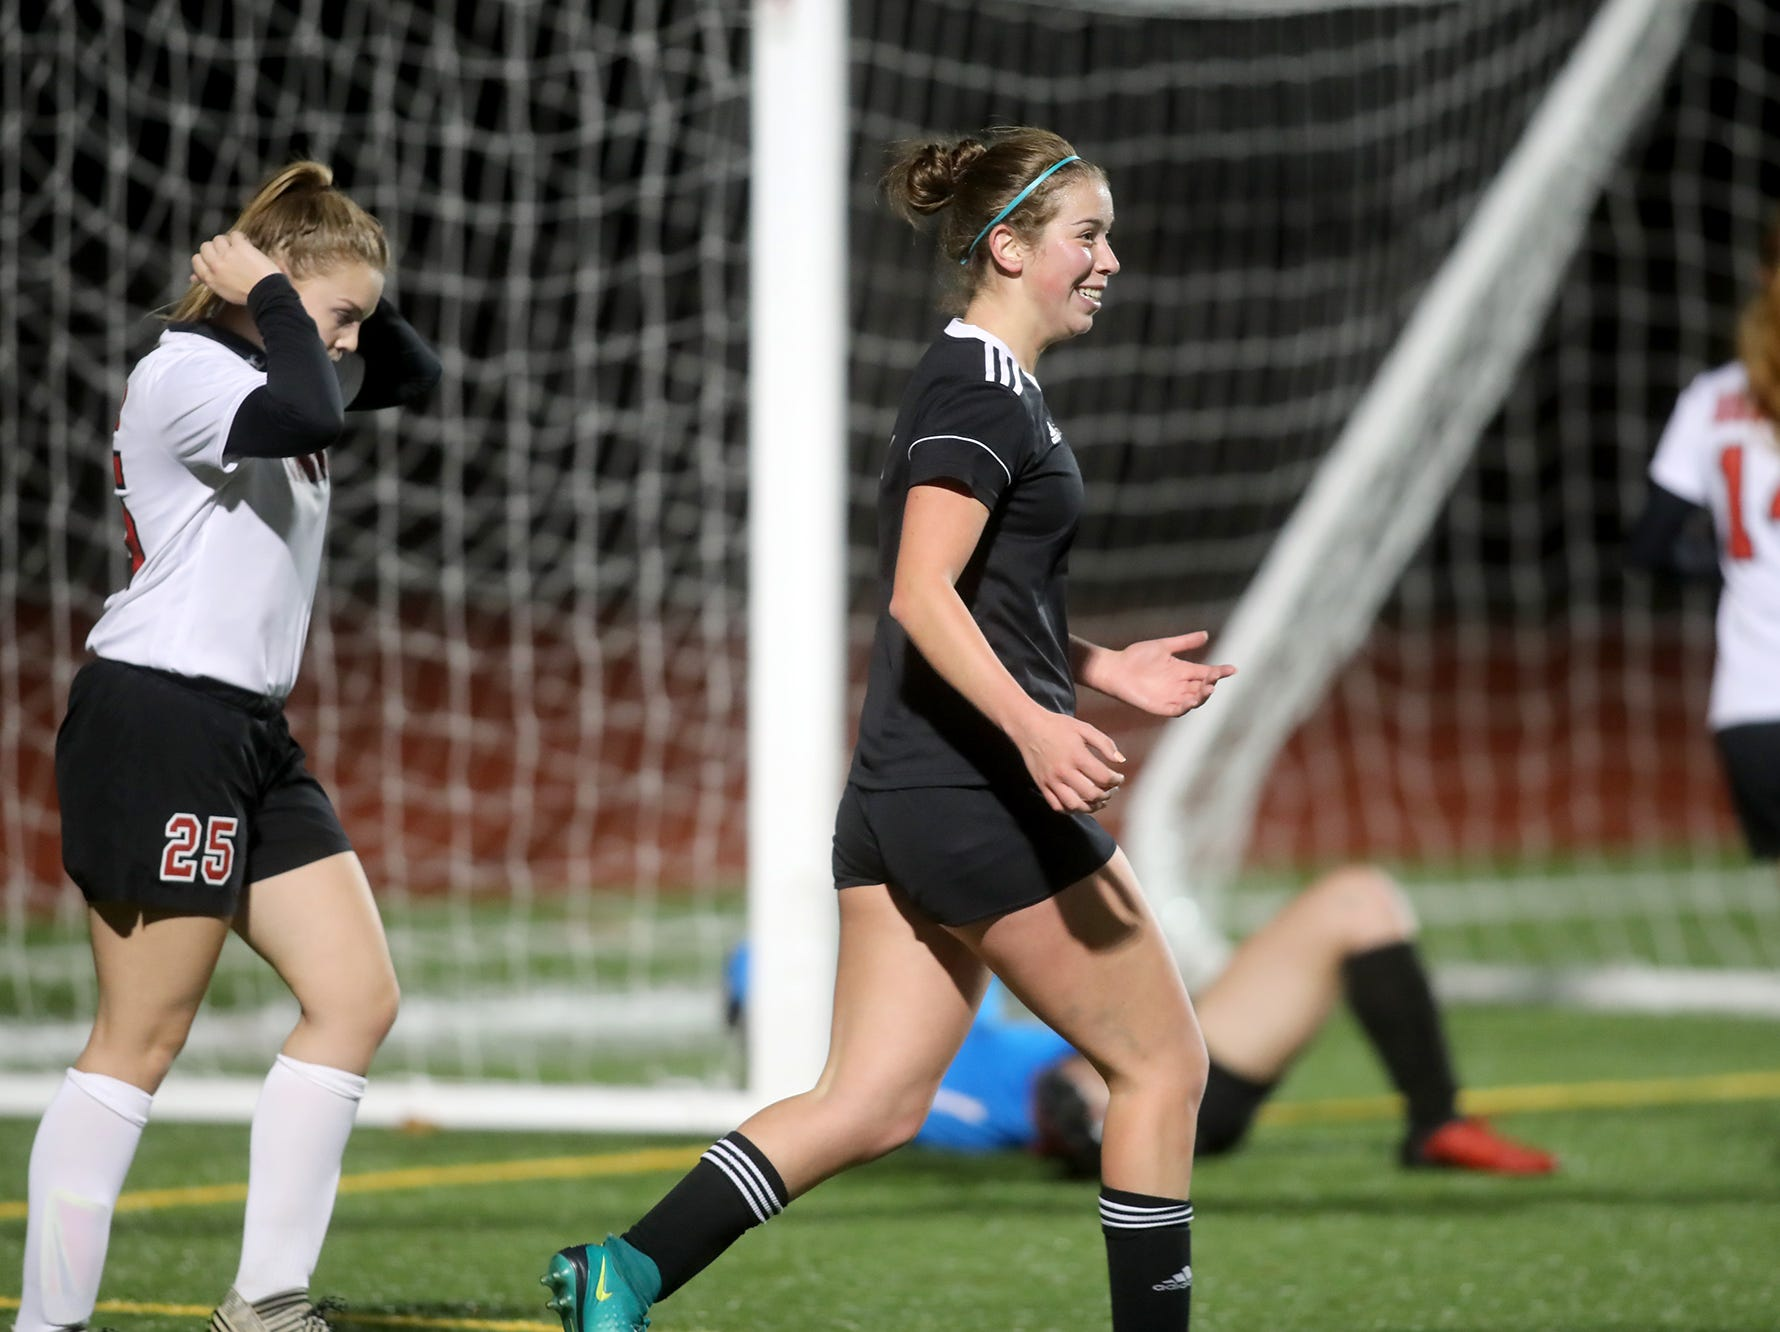 Klahowya player Hope Martin reacts after scoring a goal as the team defeated Tenino 7-0 in a state soccer game Tuesday, November 6, 2018 at Silverdale Stadium.